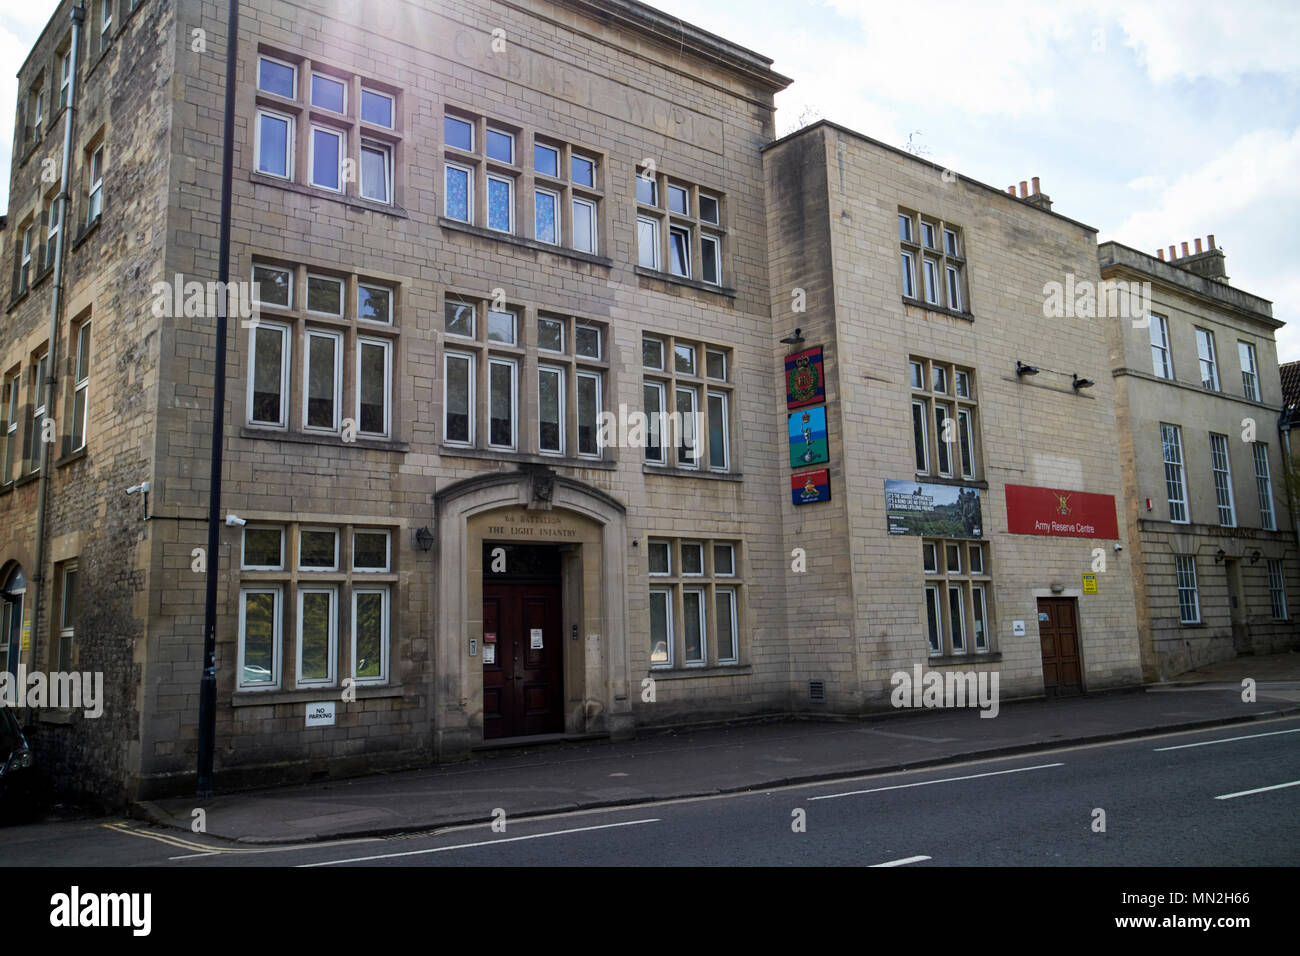 Bath Army Reserve Centre former territorial army centre in the former albion cabinet works building lower bristol road bath England UK former 6th batt - Stock Image